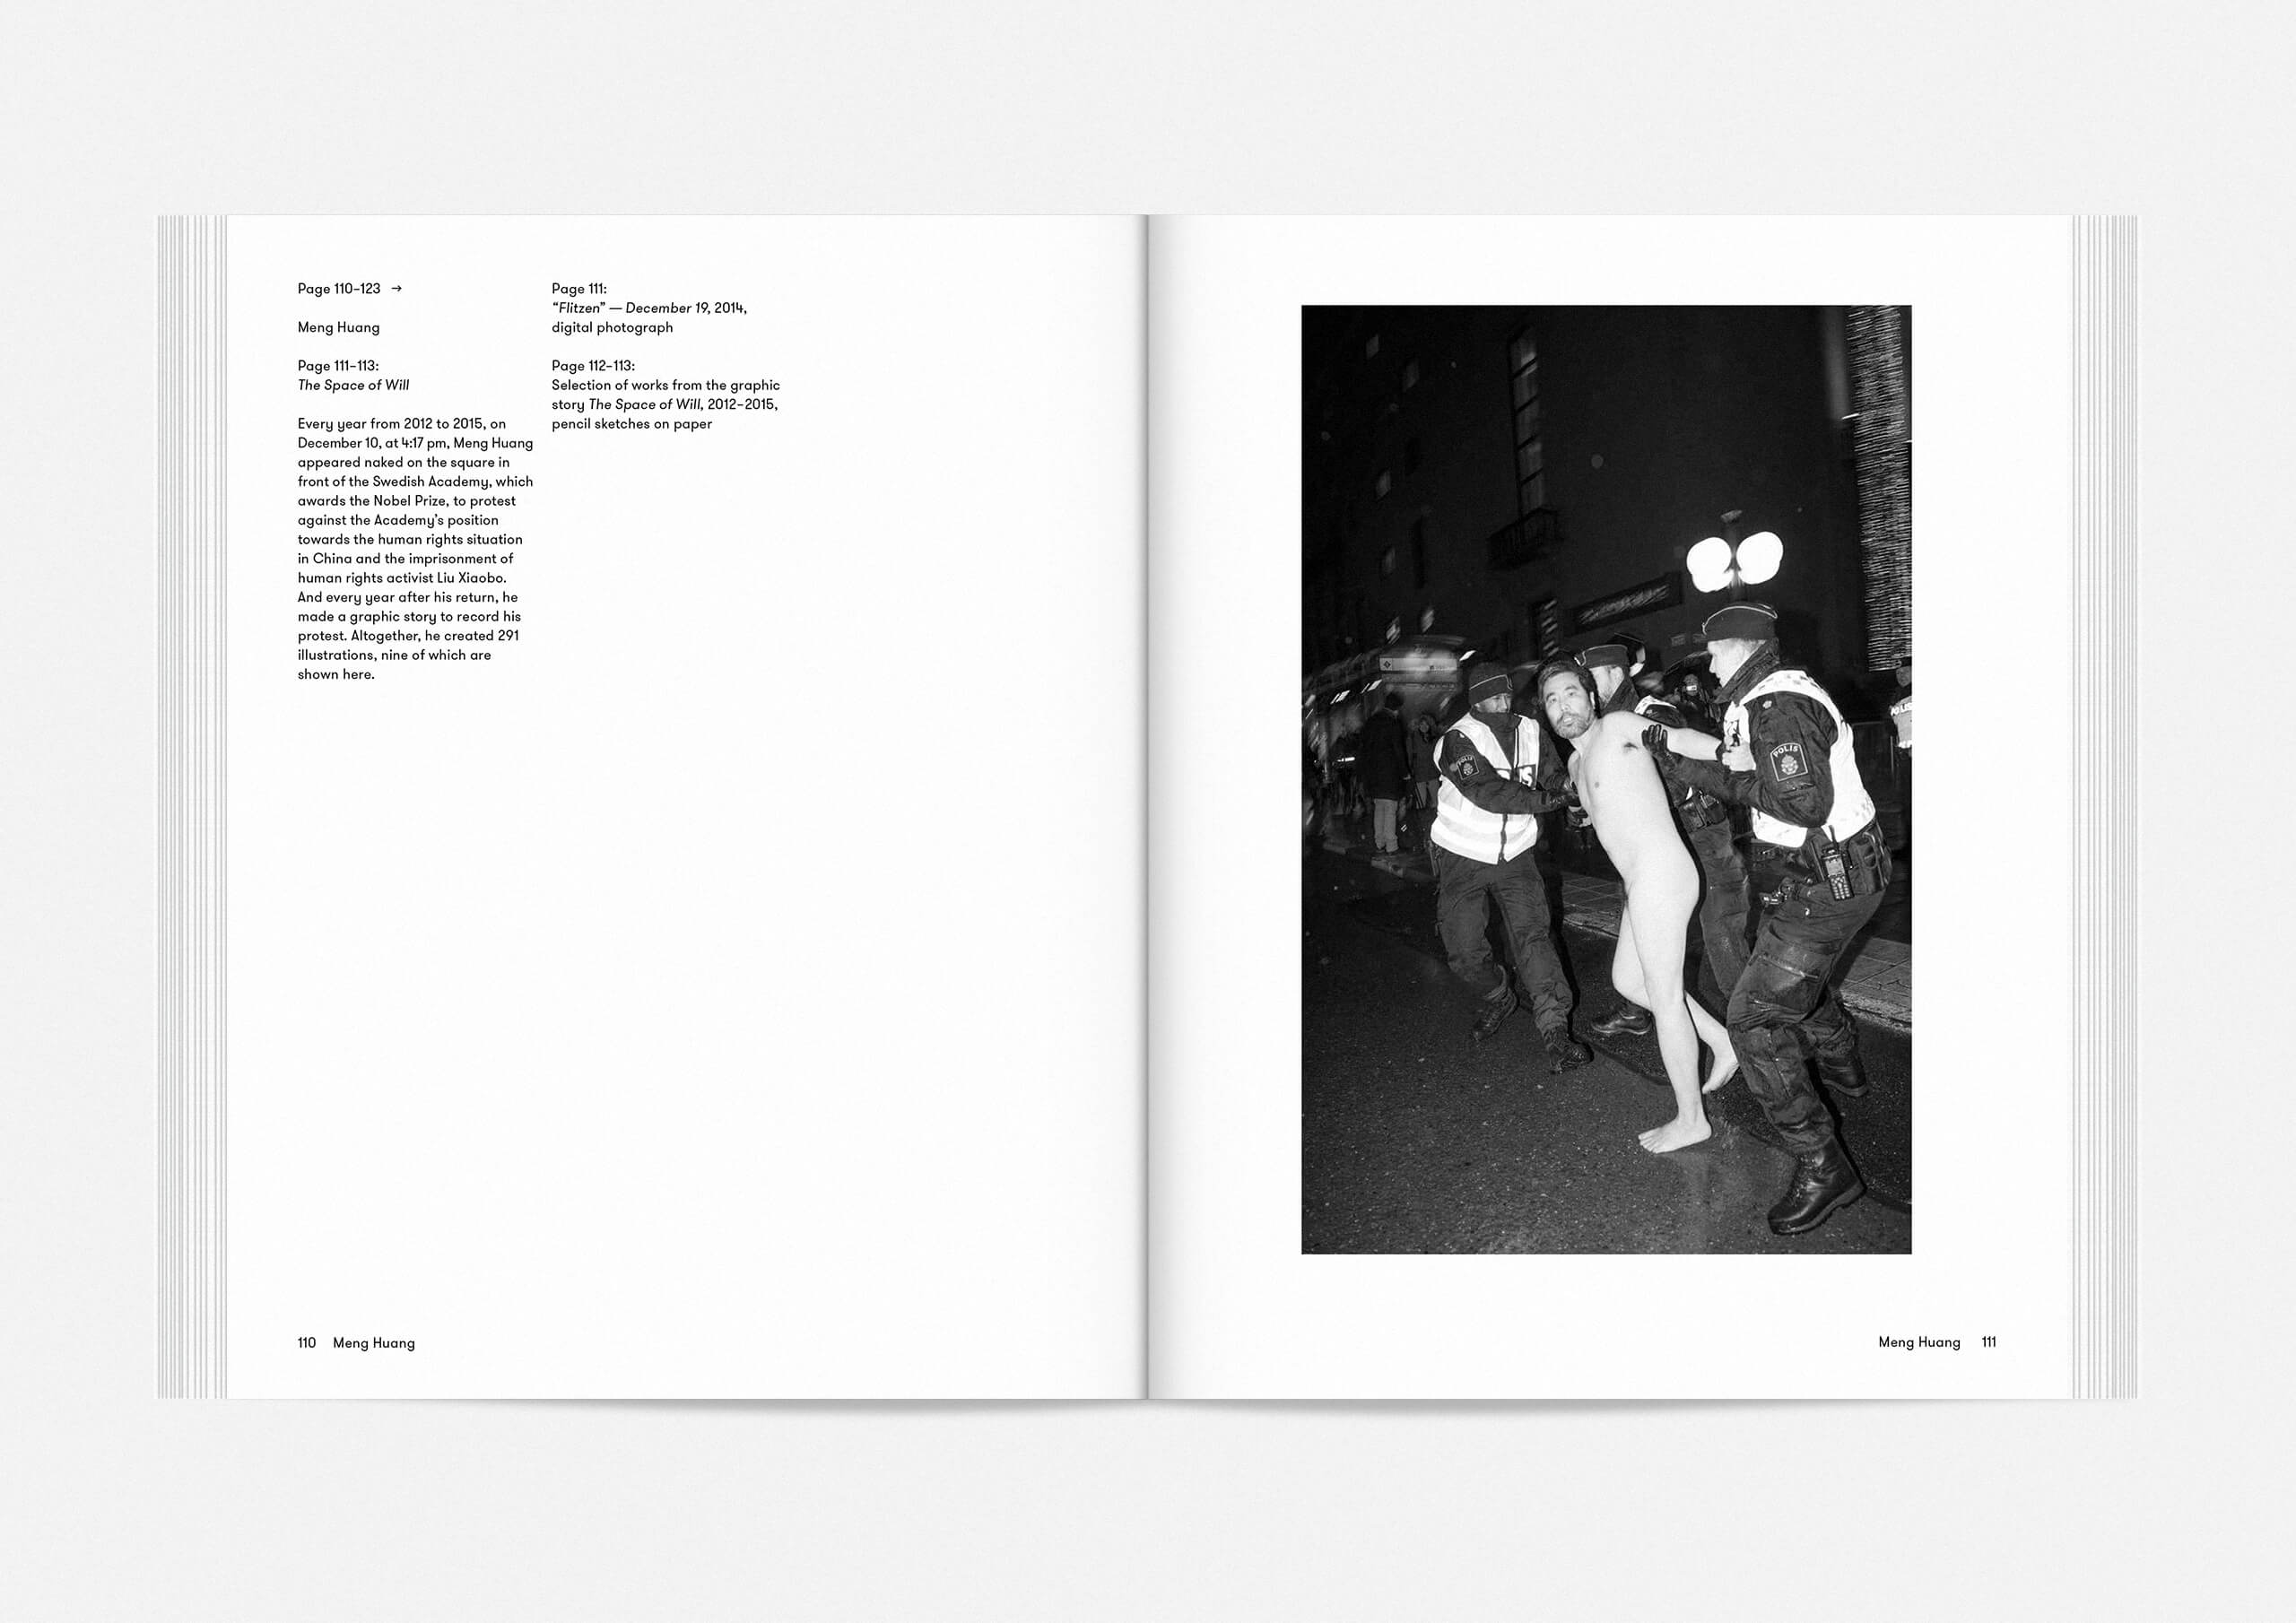 http://neuegestaltung.de/media/pages/clients/protocollum-issue-no-05/425e17bf6a-1597415142/protocollum-5-page-110111-ng.jpg